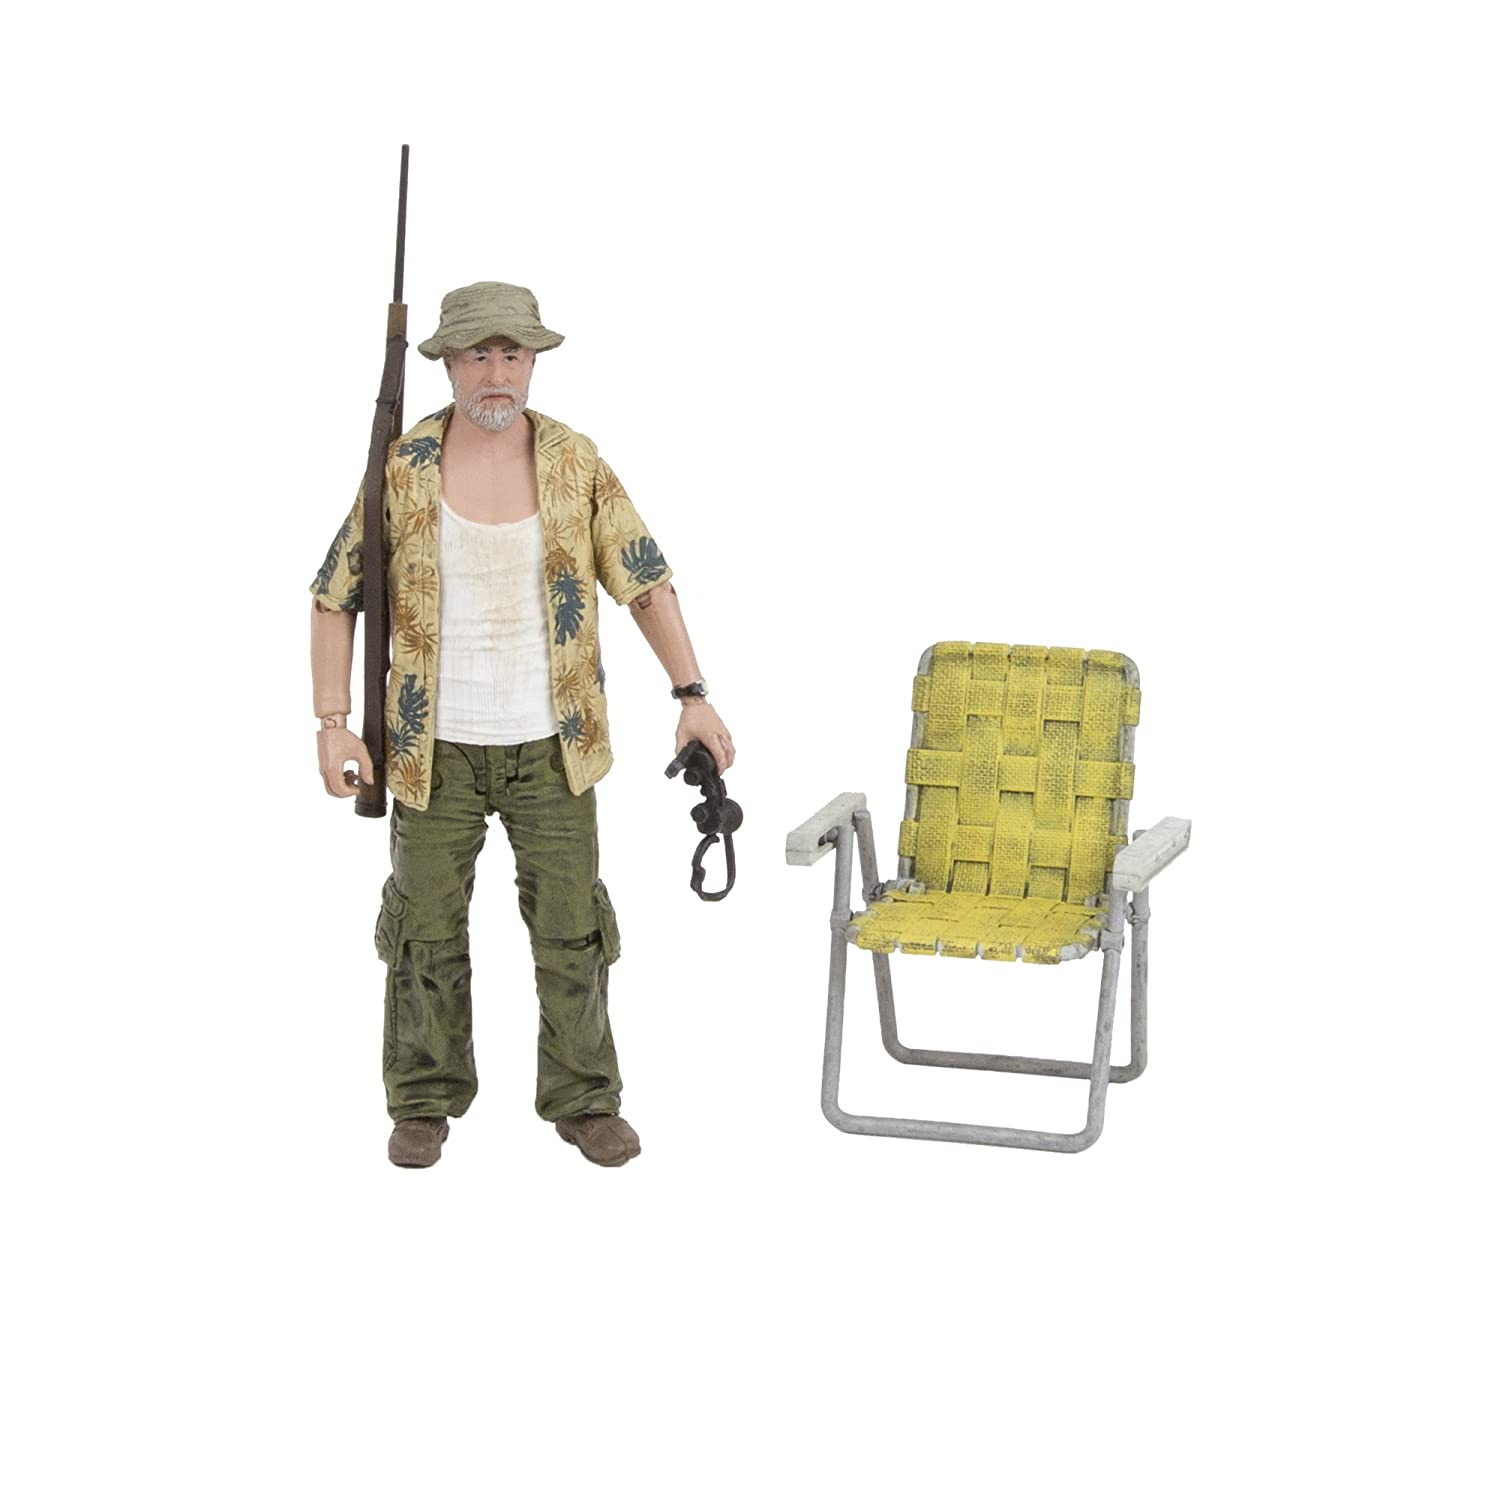 McFarlane Toys The Walking Dead TV Series 8 Dale Horvath Action Figure 14622-6